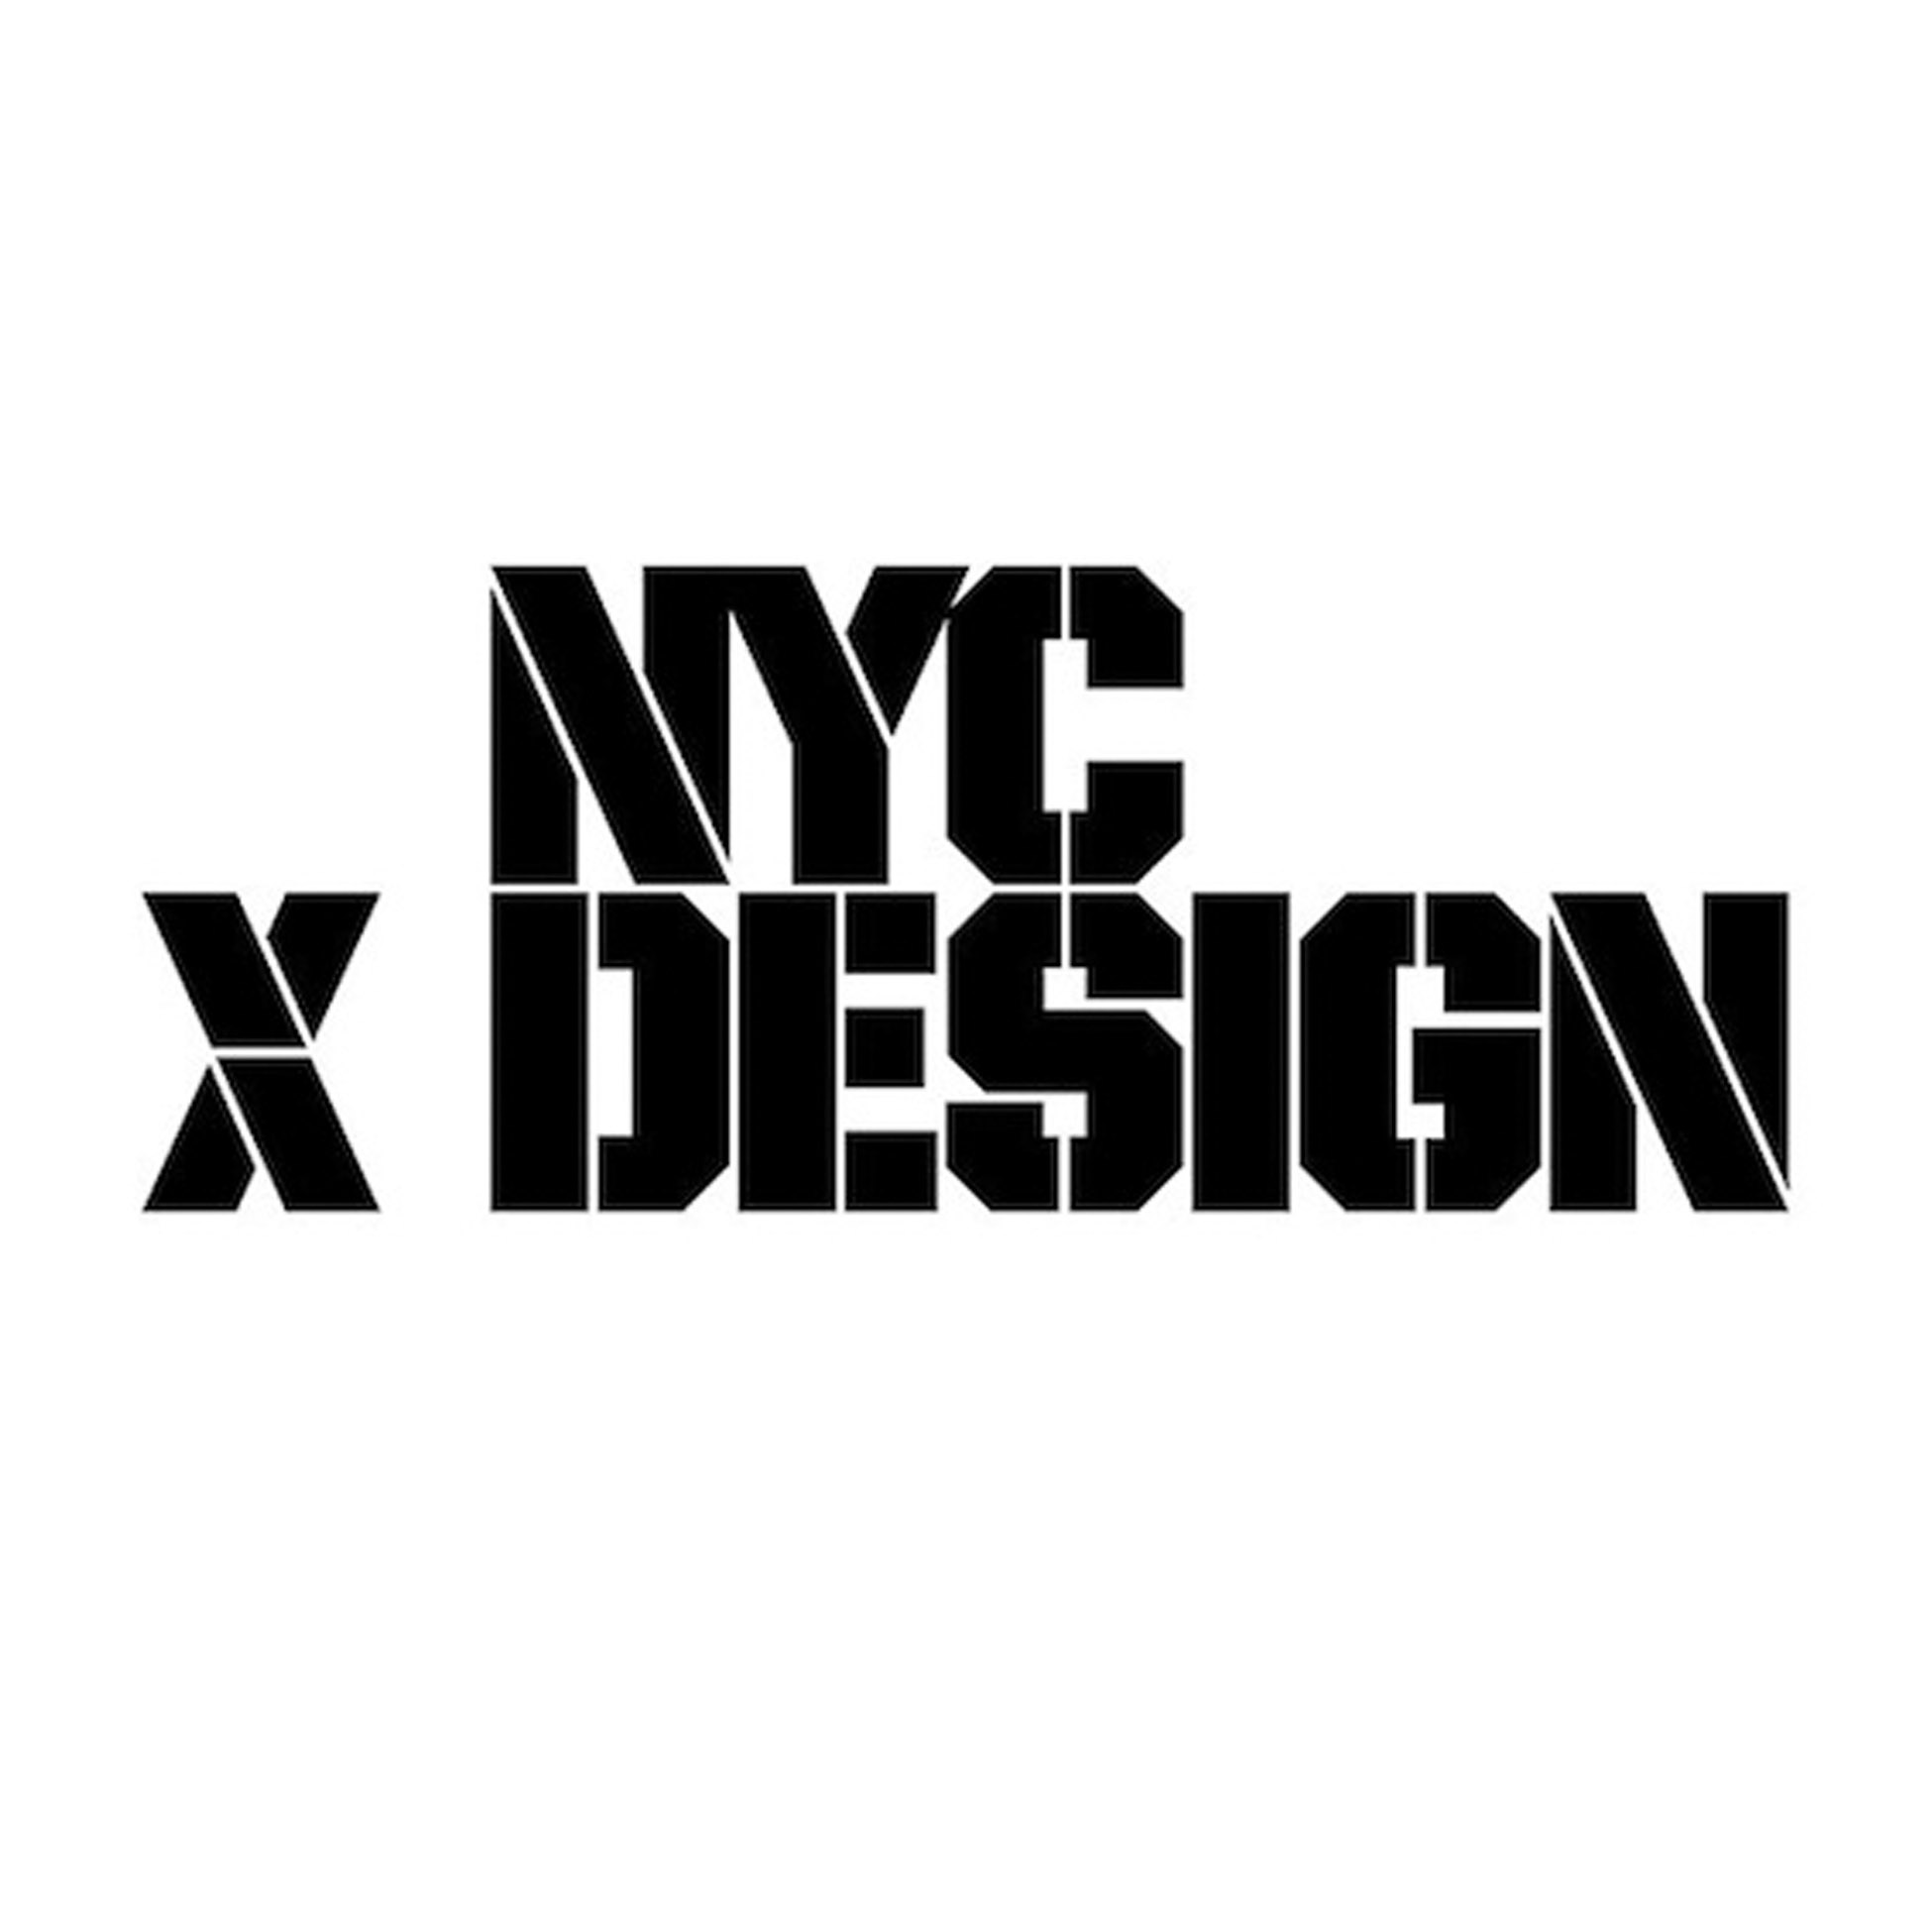 Excited to be exhibiting at this year's New York Design Week alongside other interesting and thought provoking projects.  Details about our project will be released on the day of the exhibit.  Updates to follow!   http://nycxdesign.com/events/feed-me-2015-05-08/…   In collaboration with Oscar Salguero, NYC.    ‪#‎  nydesignweek‬     ‪#‎  newyorkcity‬     ‪#‎  design‬     ‪#‎  designweek‬     ‪#‎  nyc‬     ‪#‎  archorstudio‬